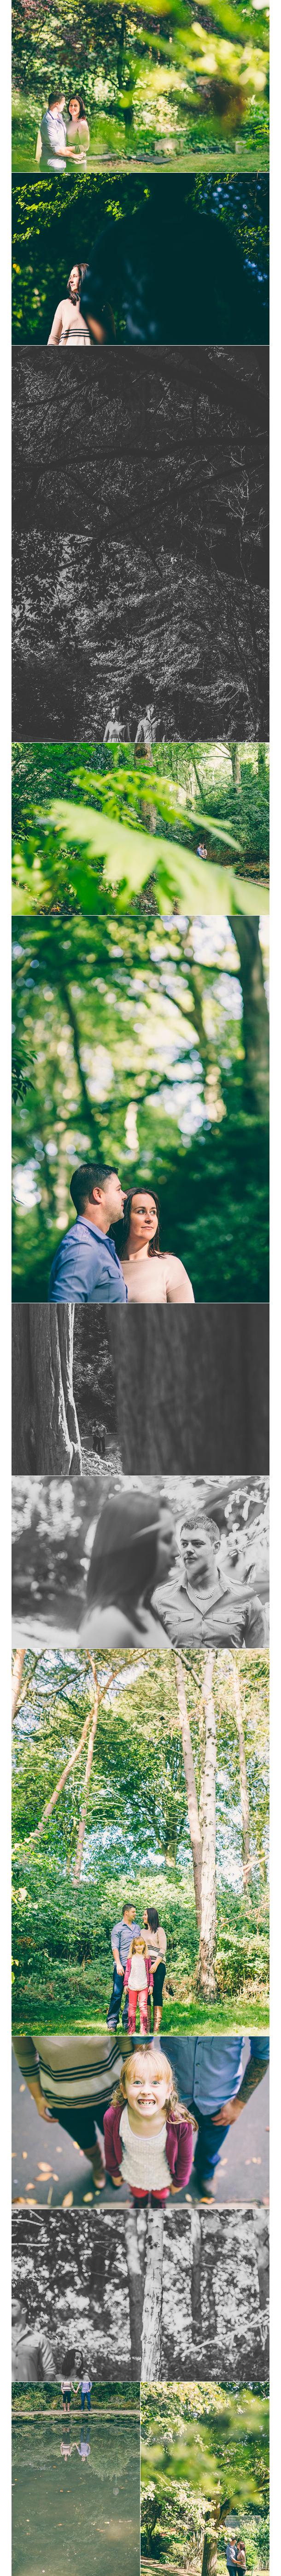 Scarborough-Wedding-Photographer-Peasholm-Park-Engagement-Shoot-Nicola-&-Graham-Blog2